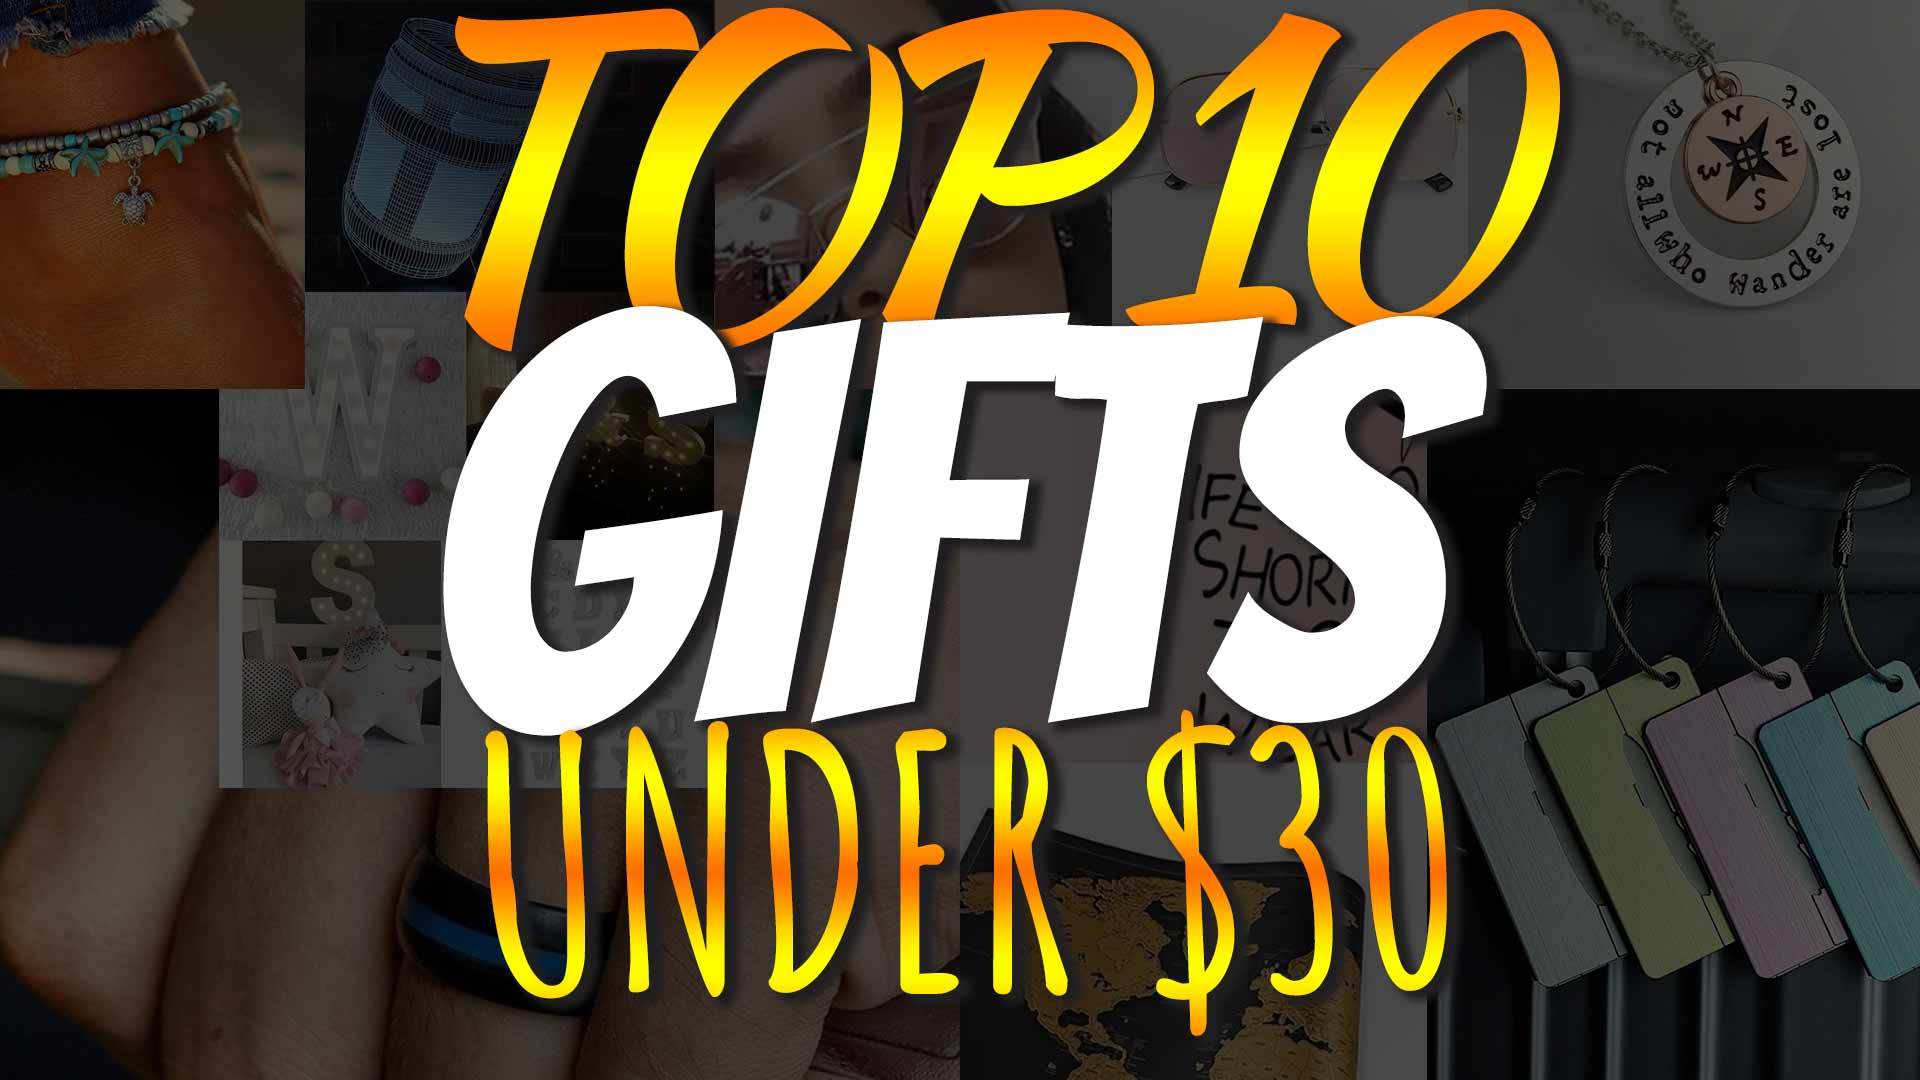 This Season's Top 10 Gifts for Under $30